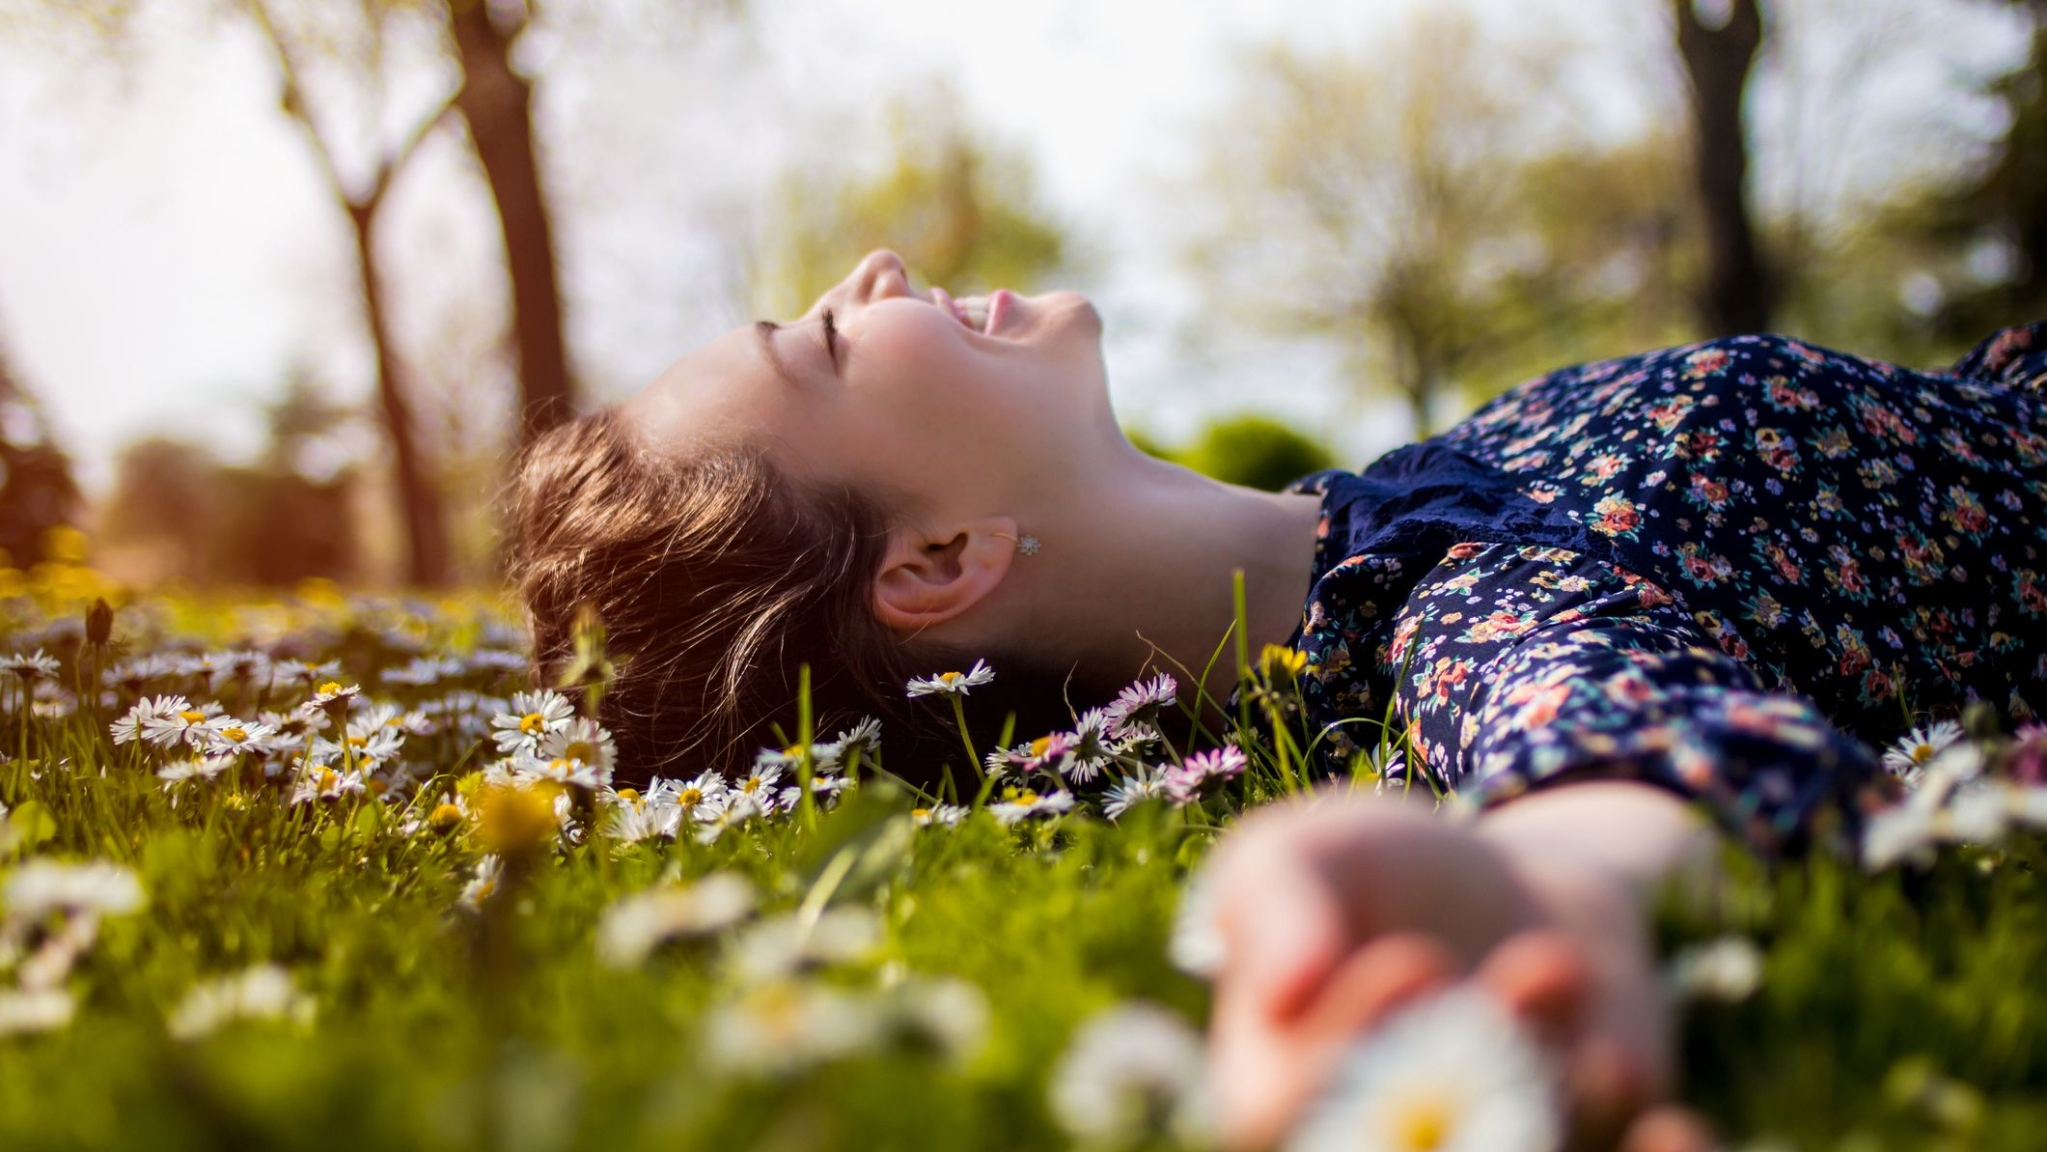 Living Near Green Spaces May Delay Menopause